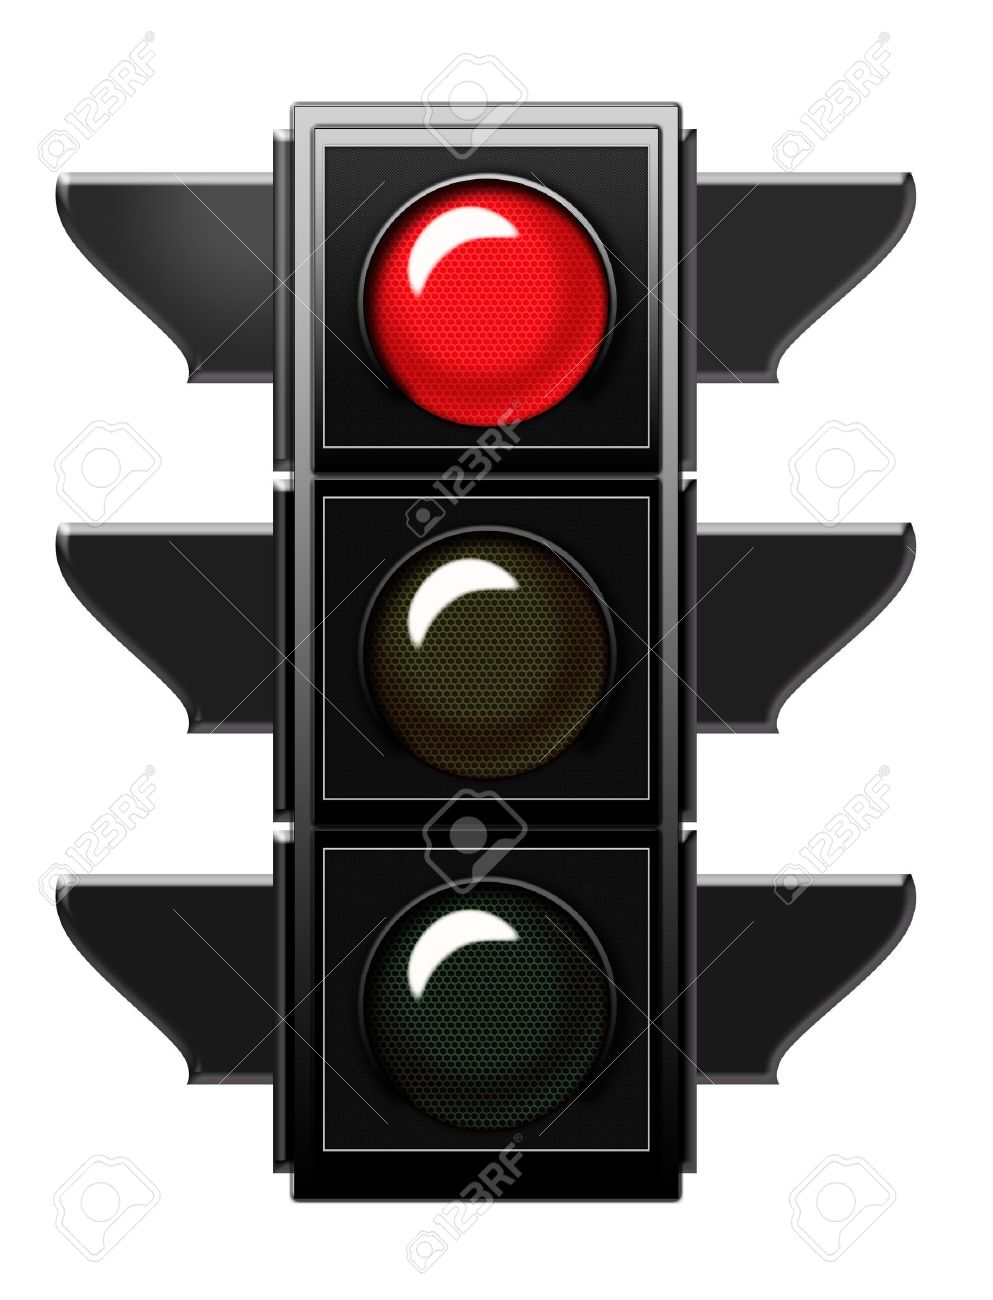 Traffic Light With Red Light Stock Photo, Picture And Royalty Free ... for Traffic Light Red Icon  545xkb